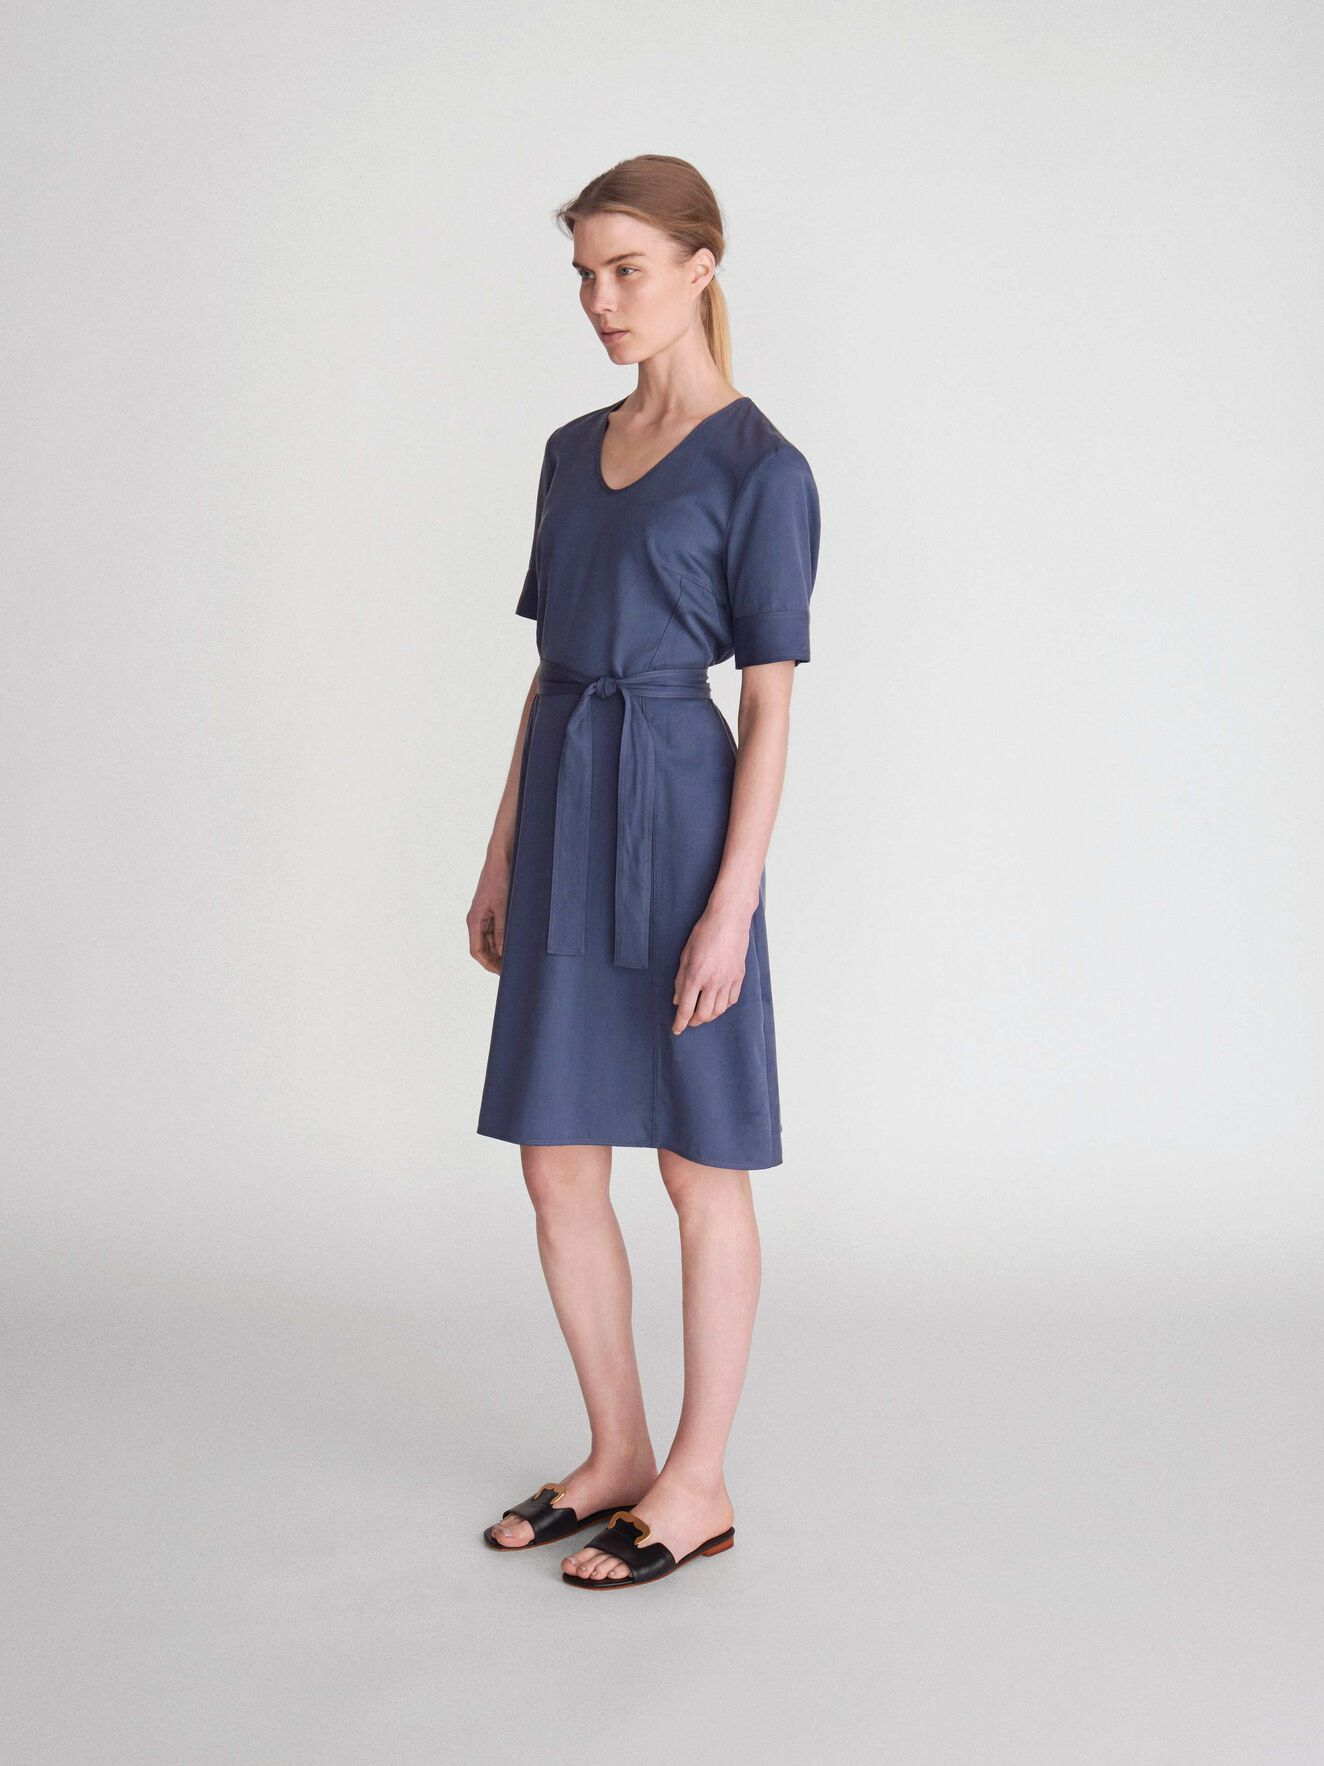 Tanella Dress in Metal Blue from Tiger of Sweden